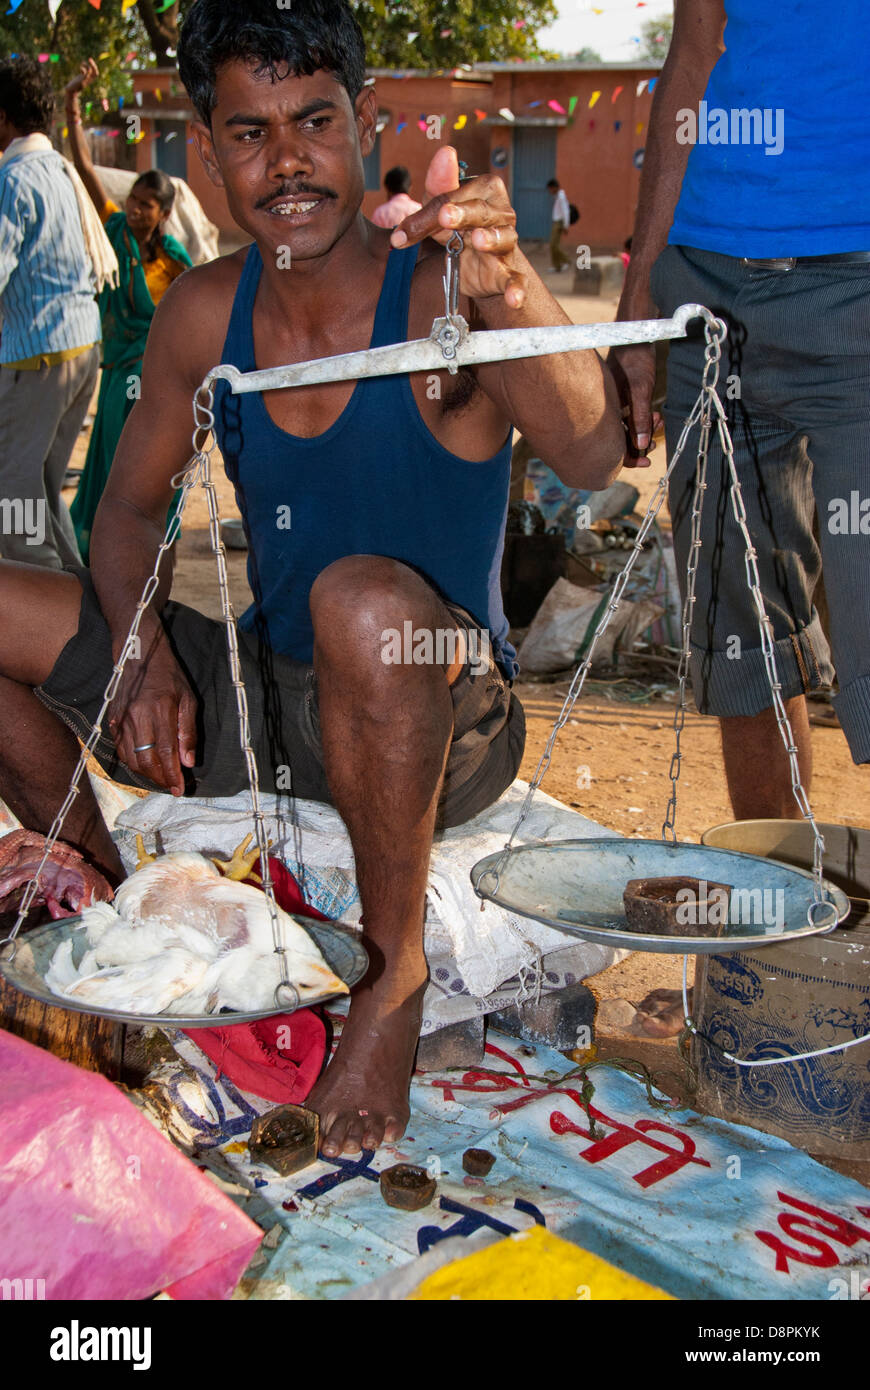 Indian vendor weighing a chicken at an open-air market in Mocha Village, Madya Pradesh, India - Stock Image